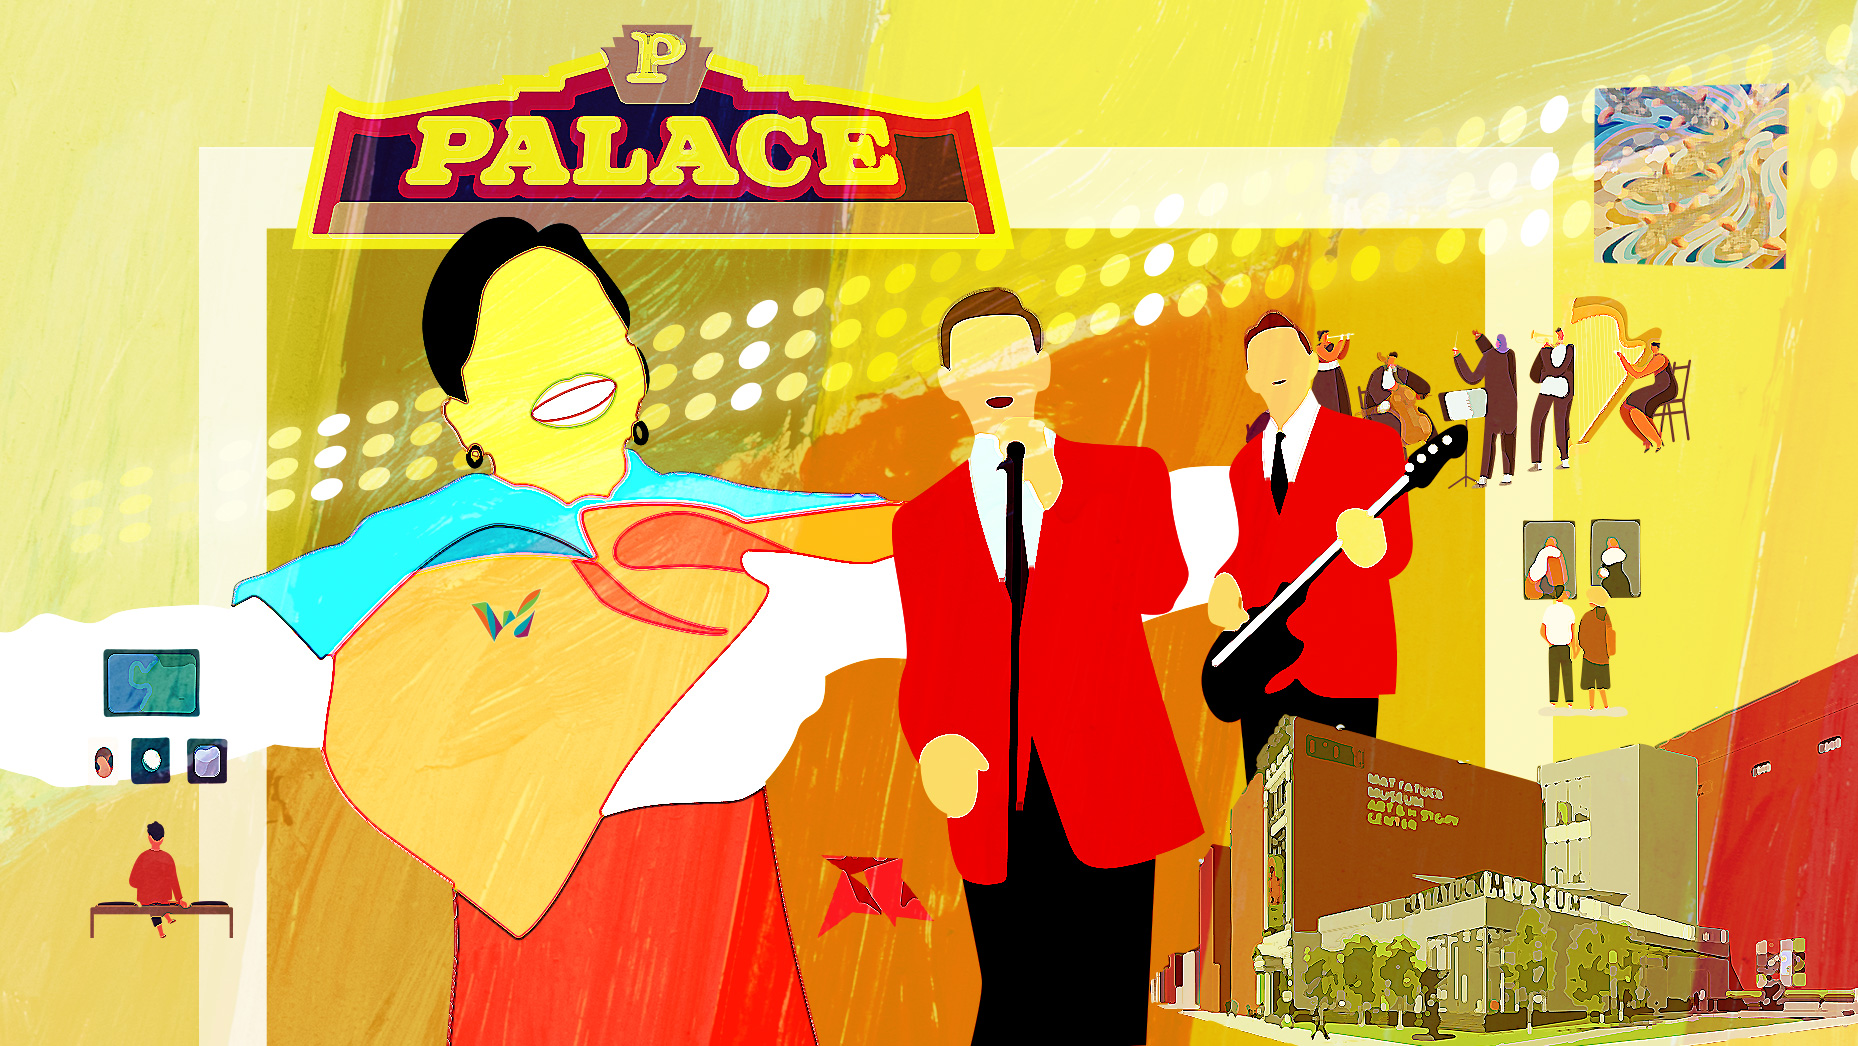 Colorful illustration of musicians, the Palace Theater and Mattatuck Museum in Waterbury CT